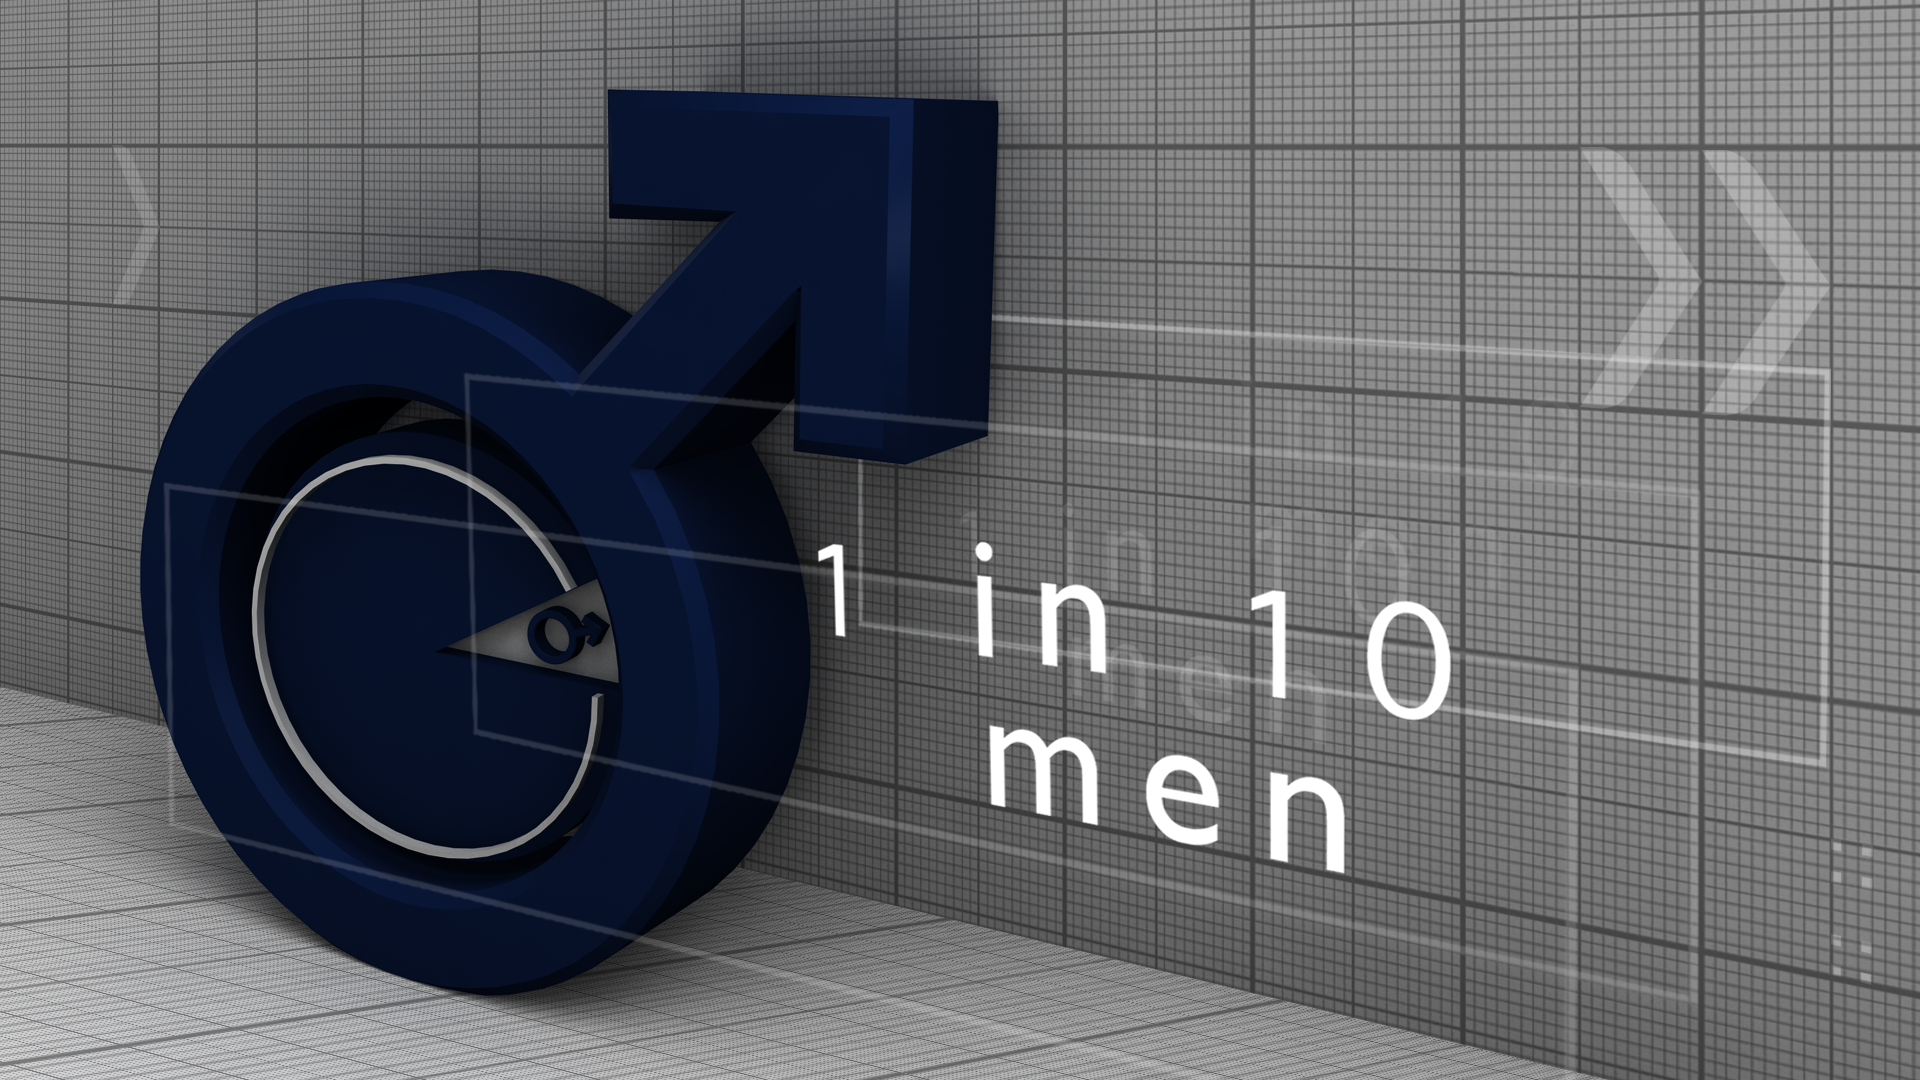 06_1in10men_.png